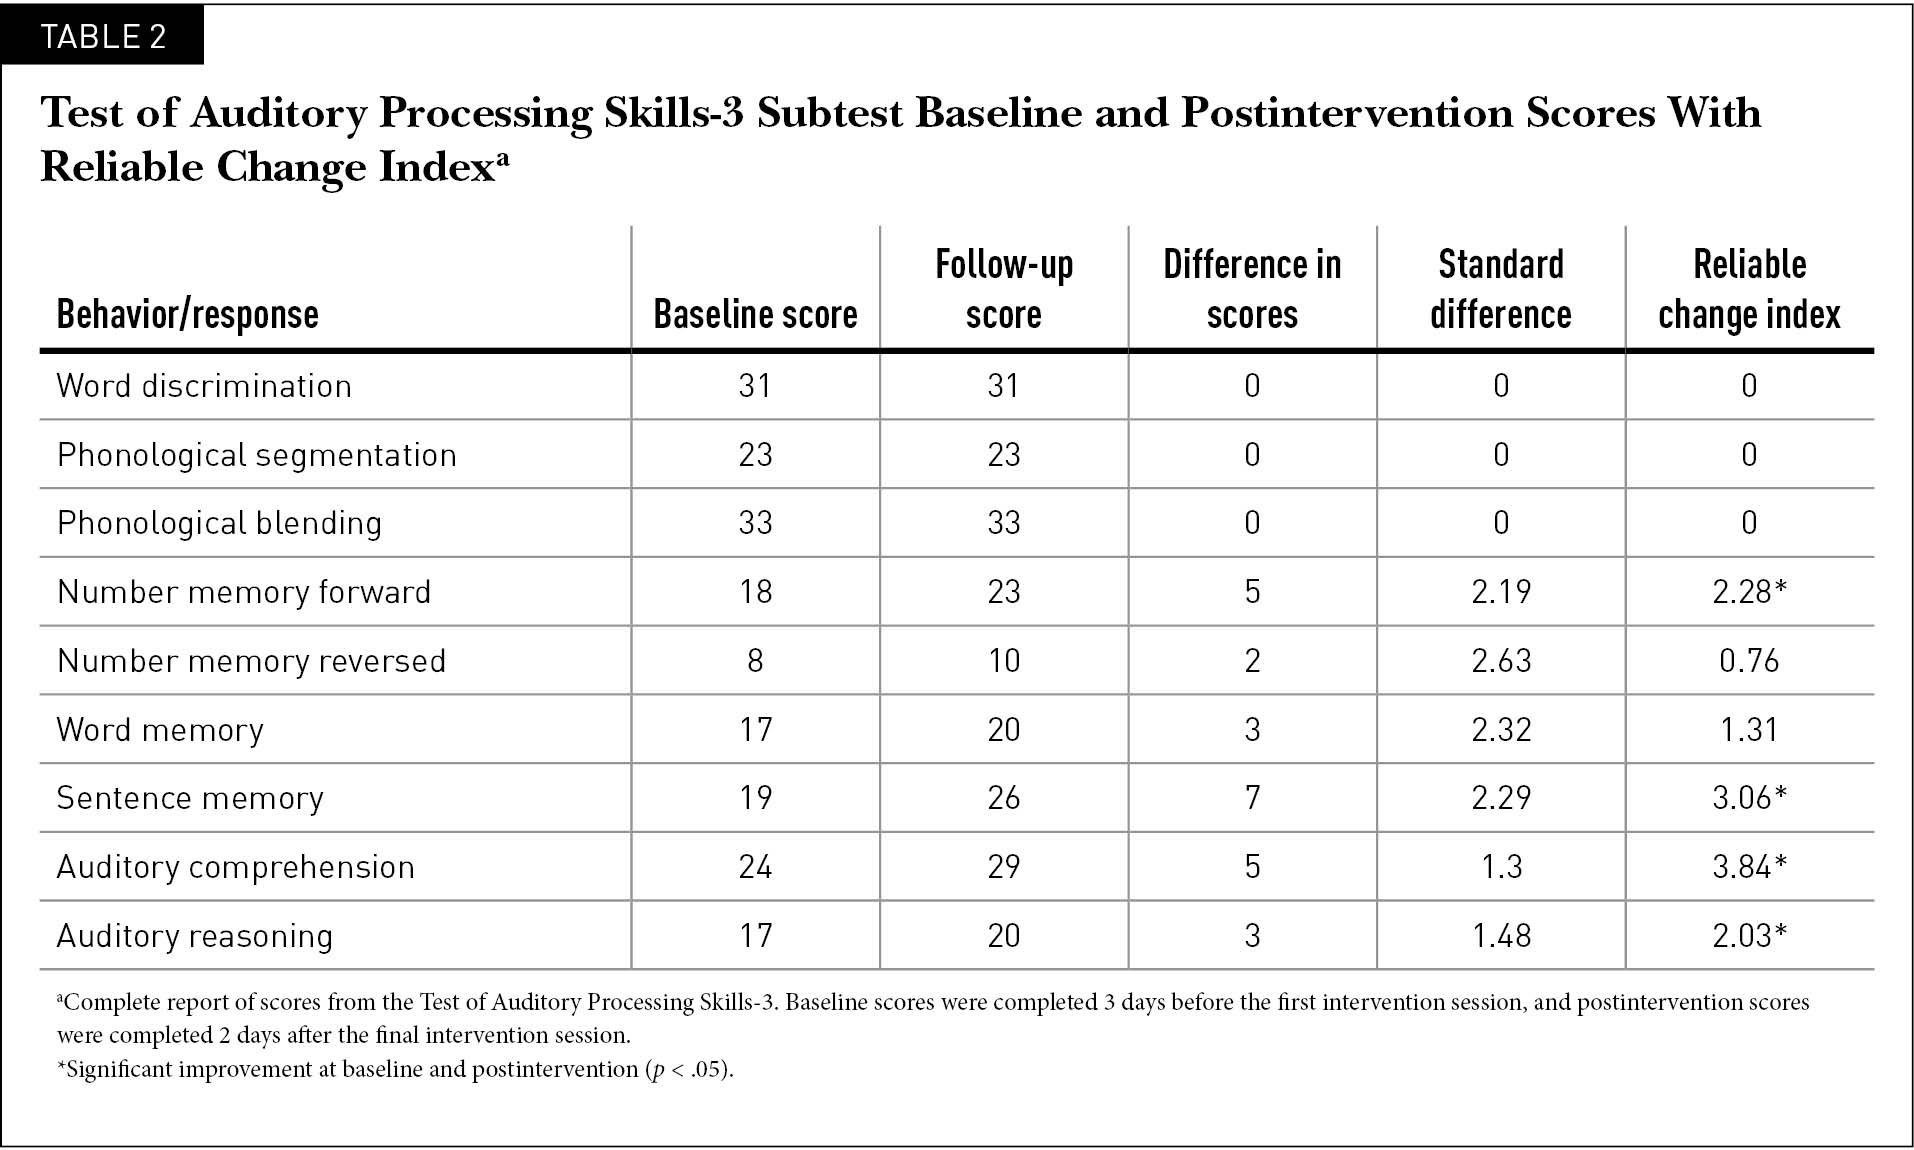 Test of Auditory Processing Skills-3 Subtest Baseline and Postintervention Scores With Reliable Change Indexa